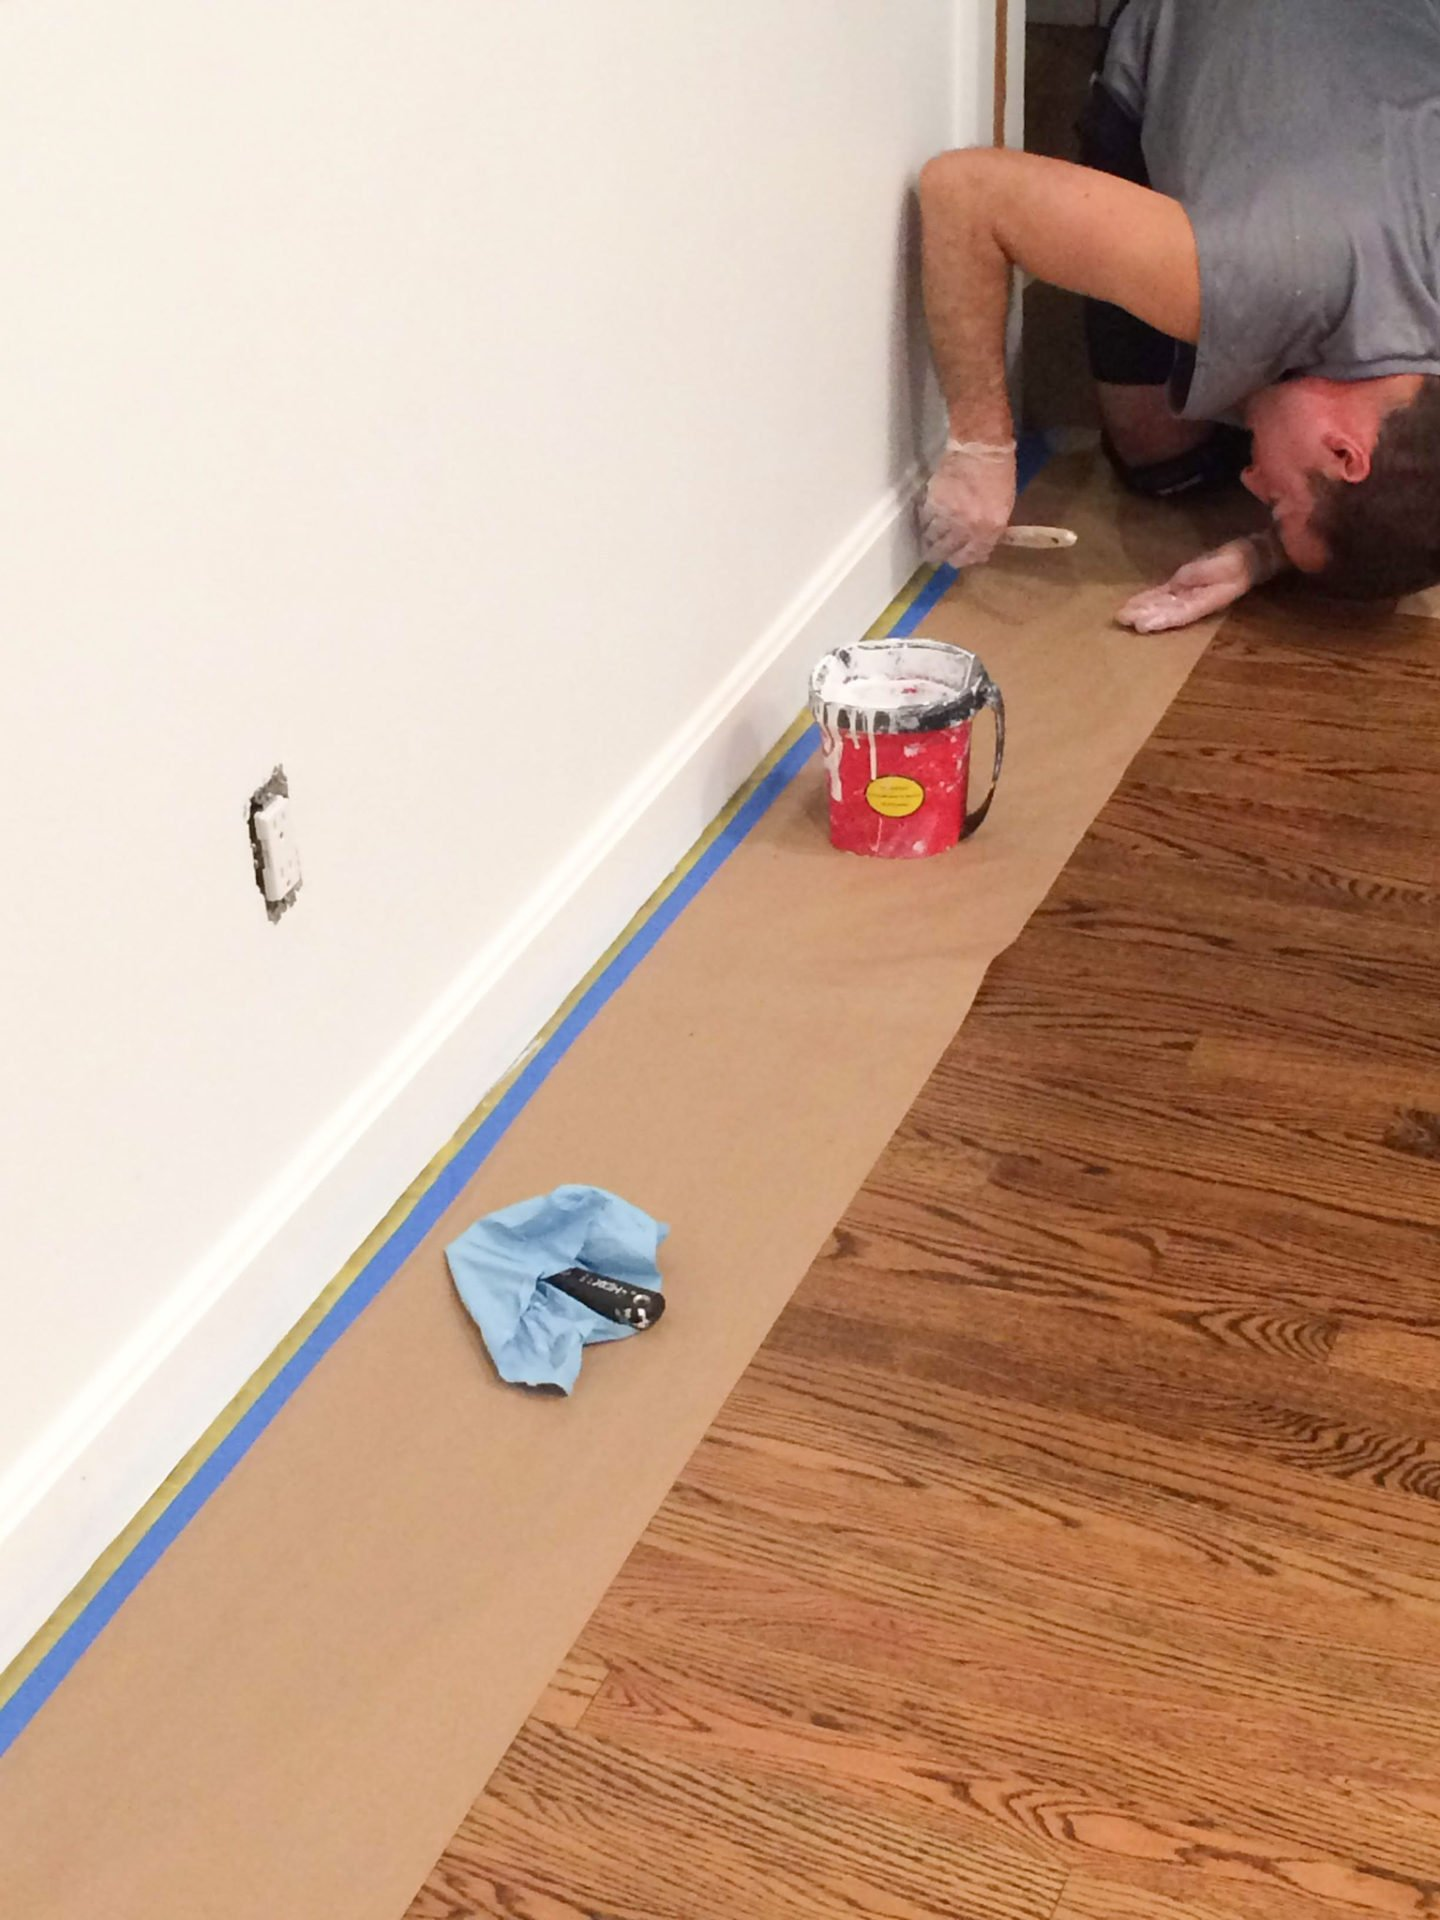 Use making paper for paint touch-ups, after refinishing hardwood floors